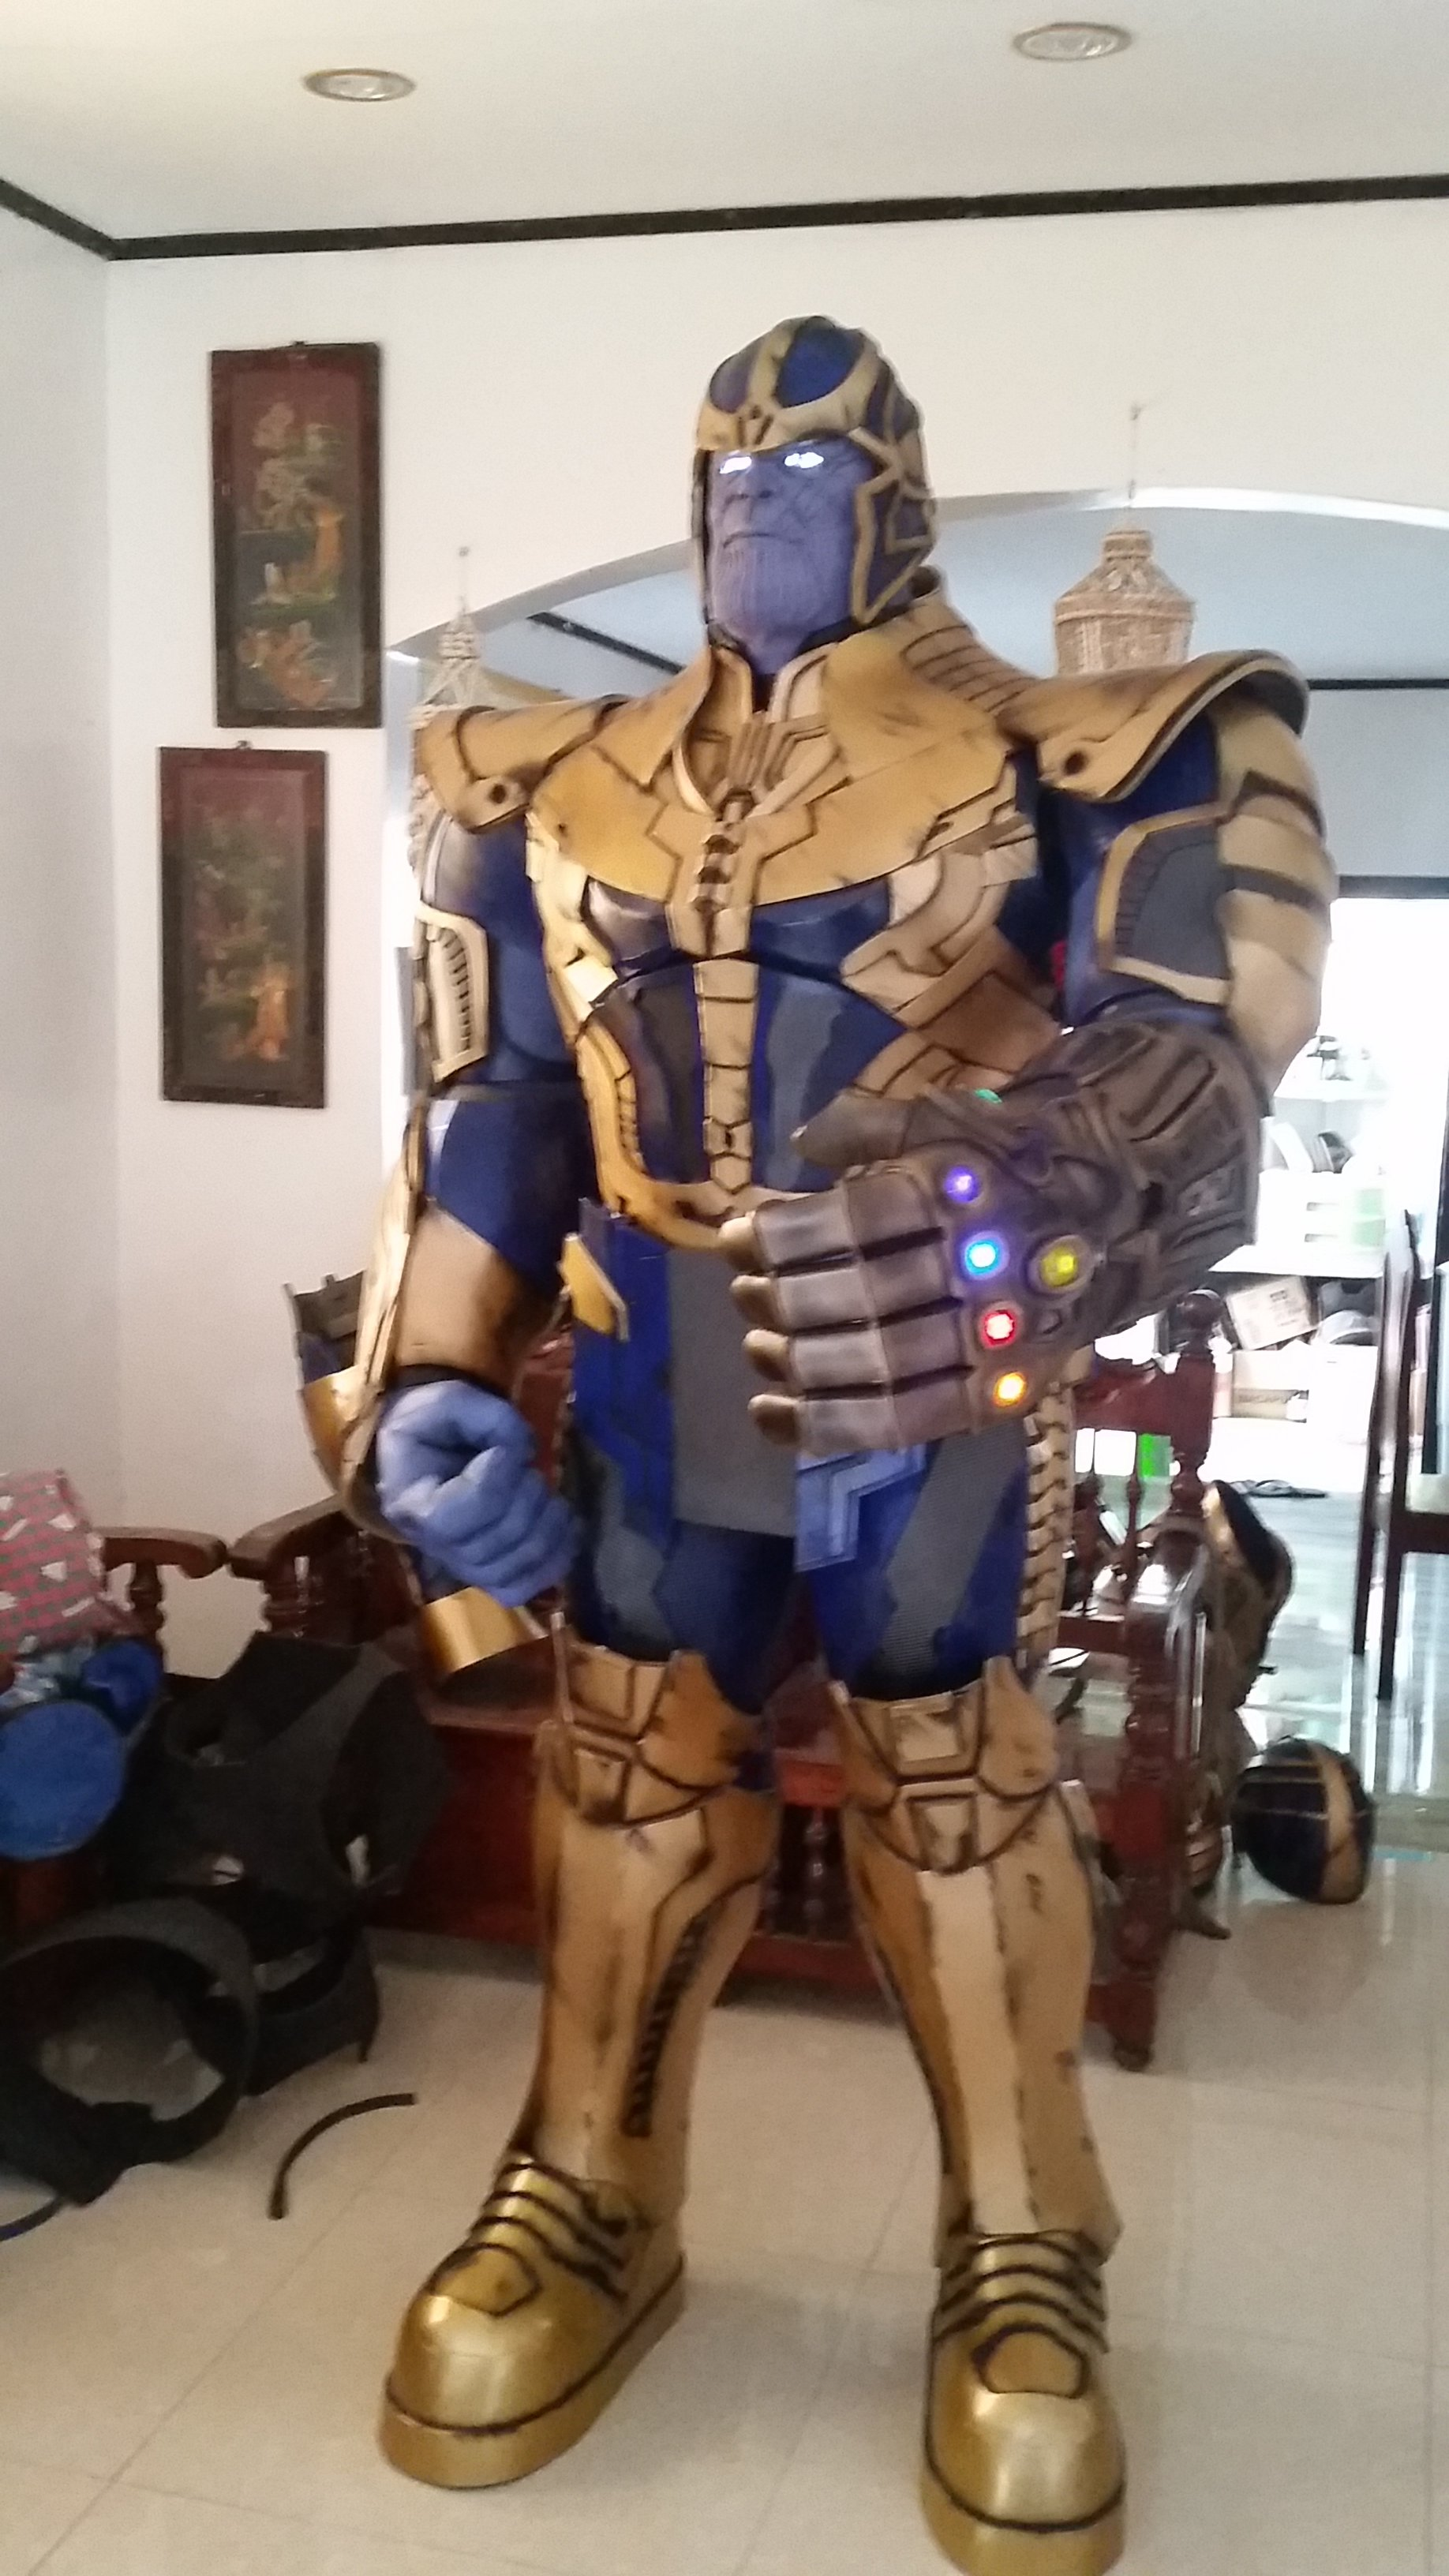 Thanos avengers 1 with sound effects | RPF Costume and Prop